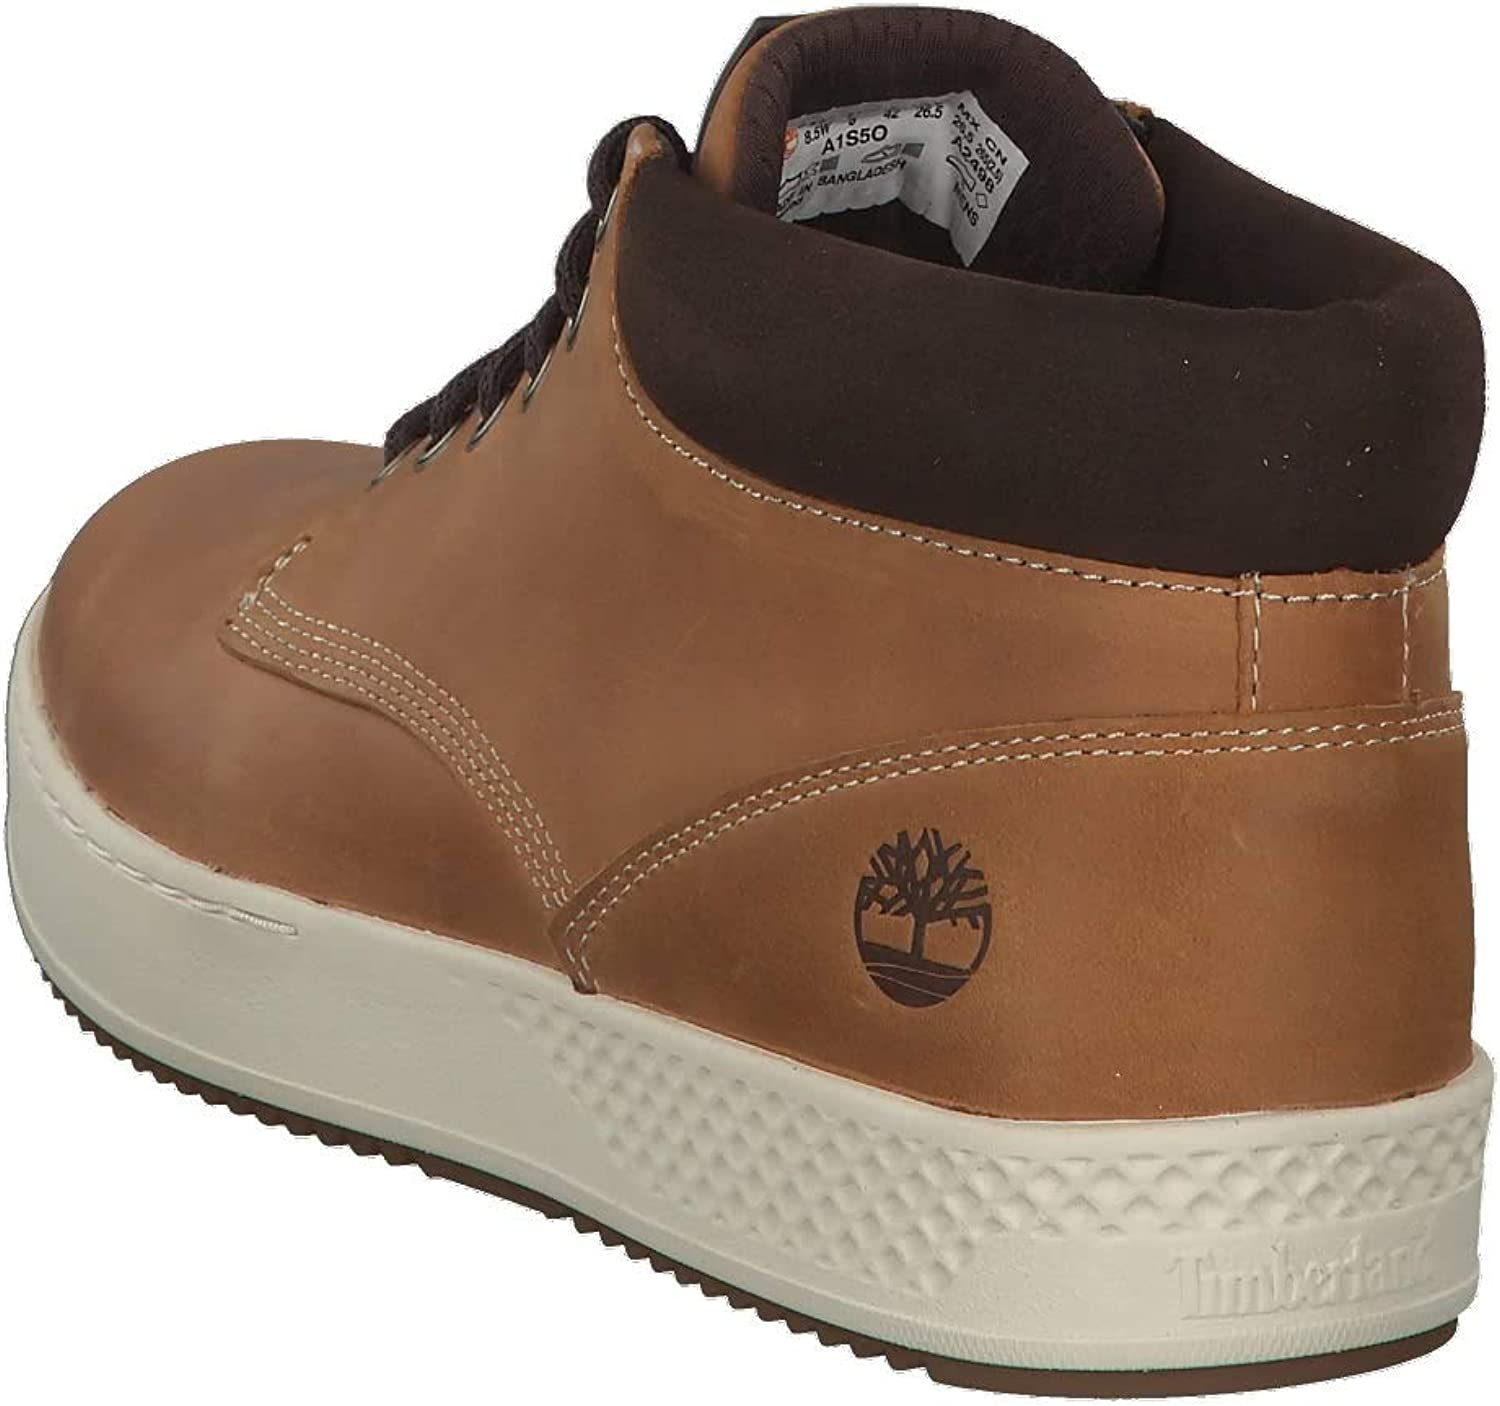 : TIMBERLAND CITYROAM CUPSOLE CHU WHEAT: Shoes